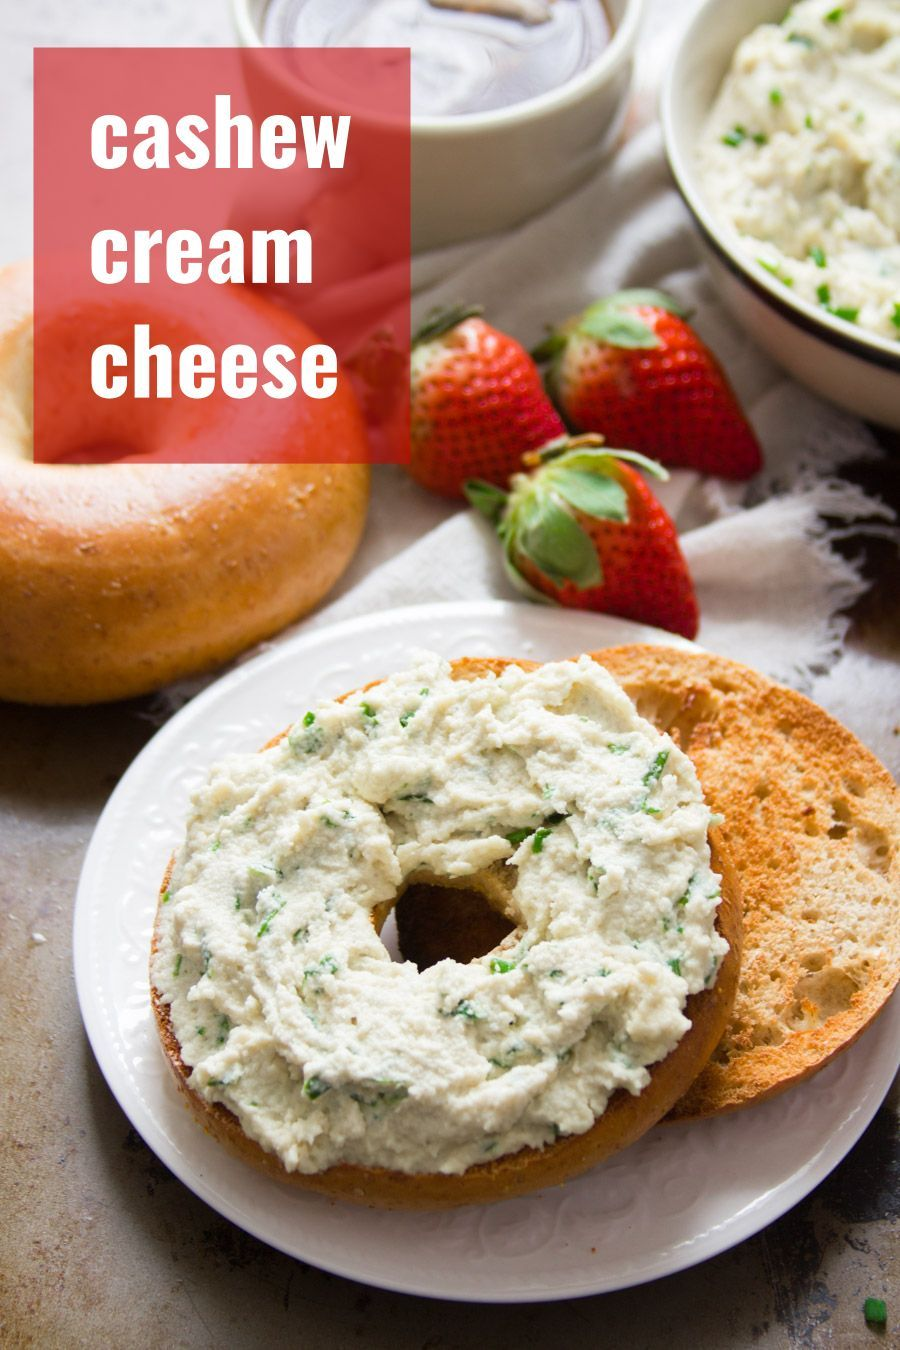 Totally Vegan Cream Cheese Heck Yeah It S Not Only Possible It S Delicious Too This Dreamy Cashew Cream C Vegan Pantry Vegan Cream Cheese No Dairy Recipes